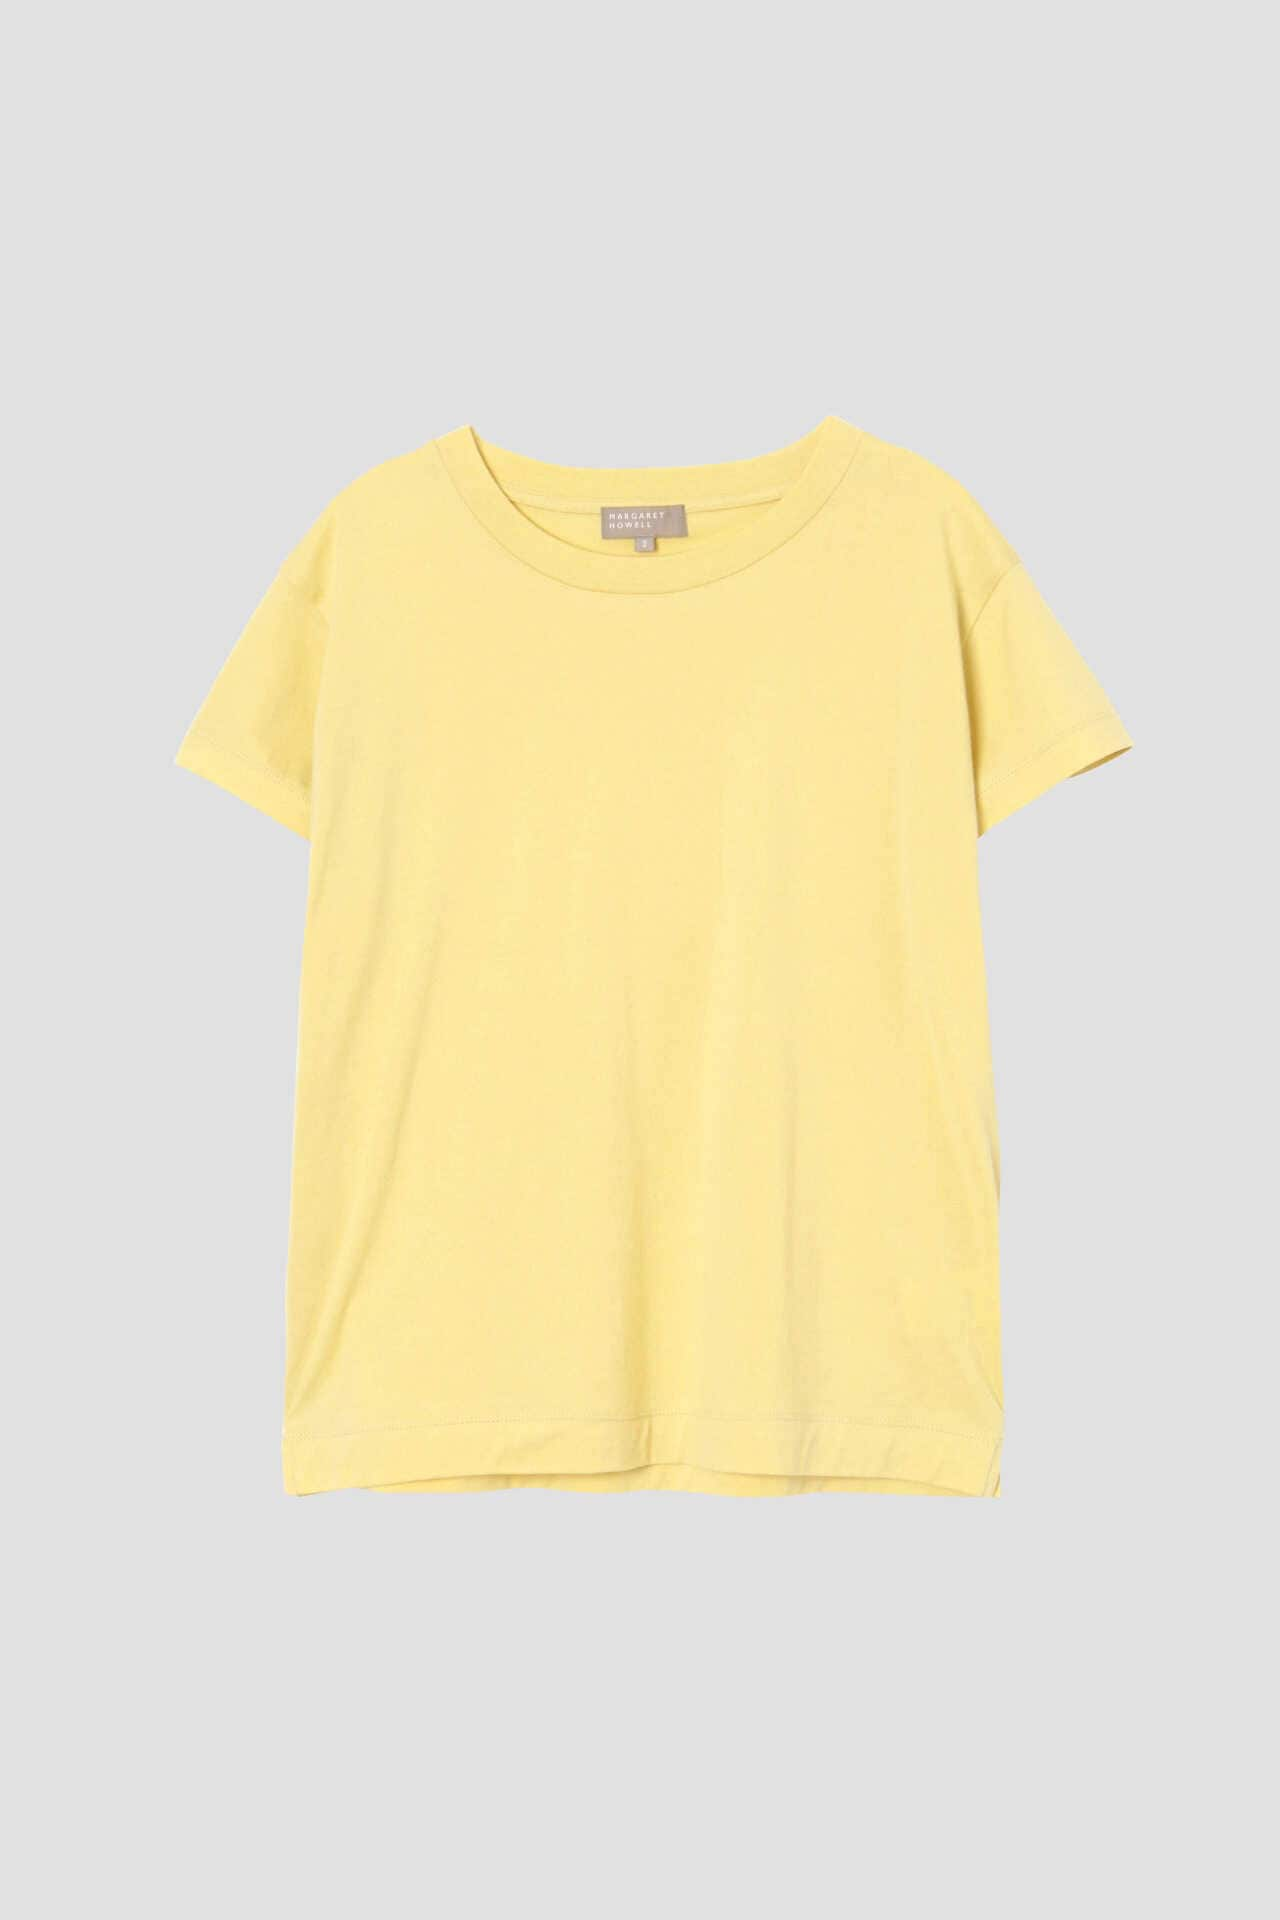 PLAIN COTTON JERSEY5